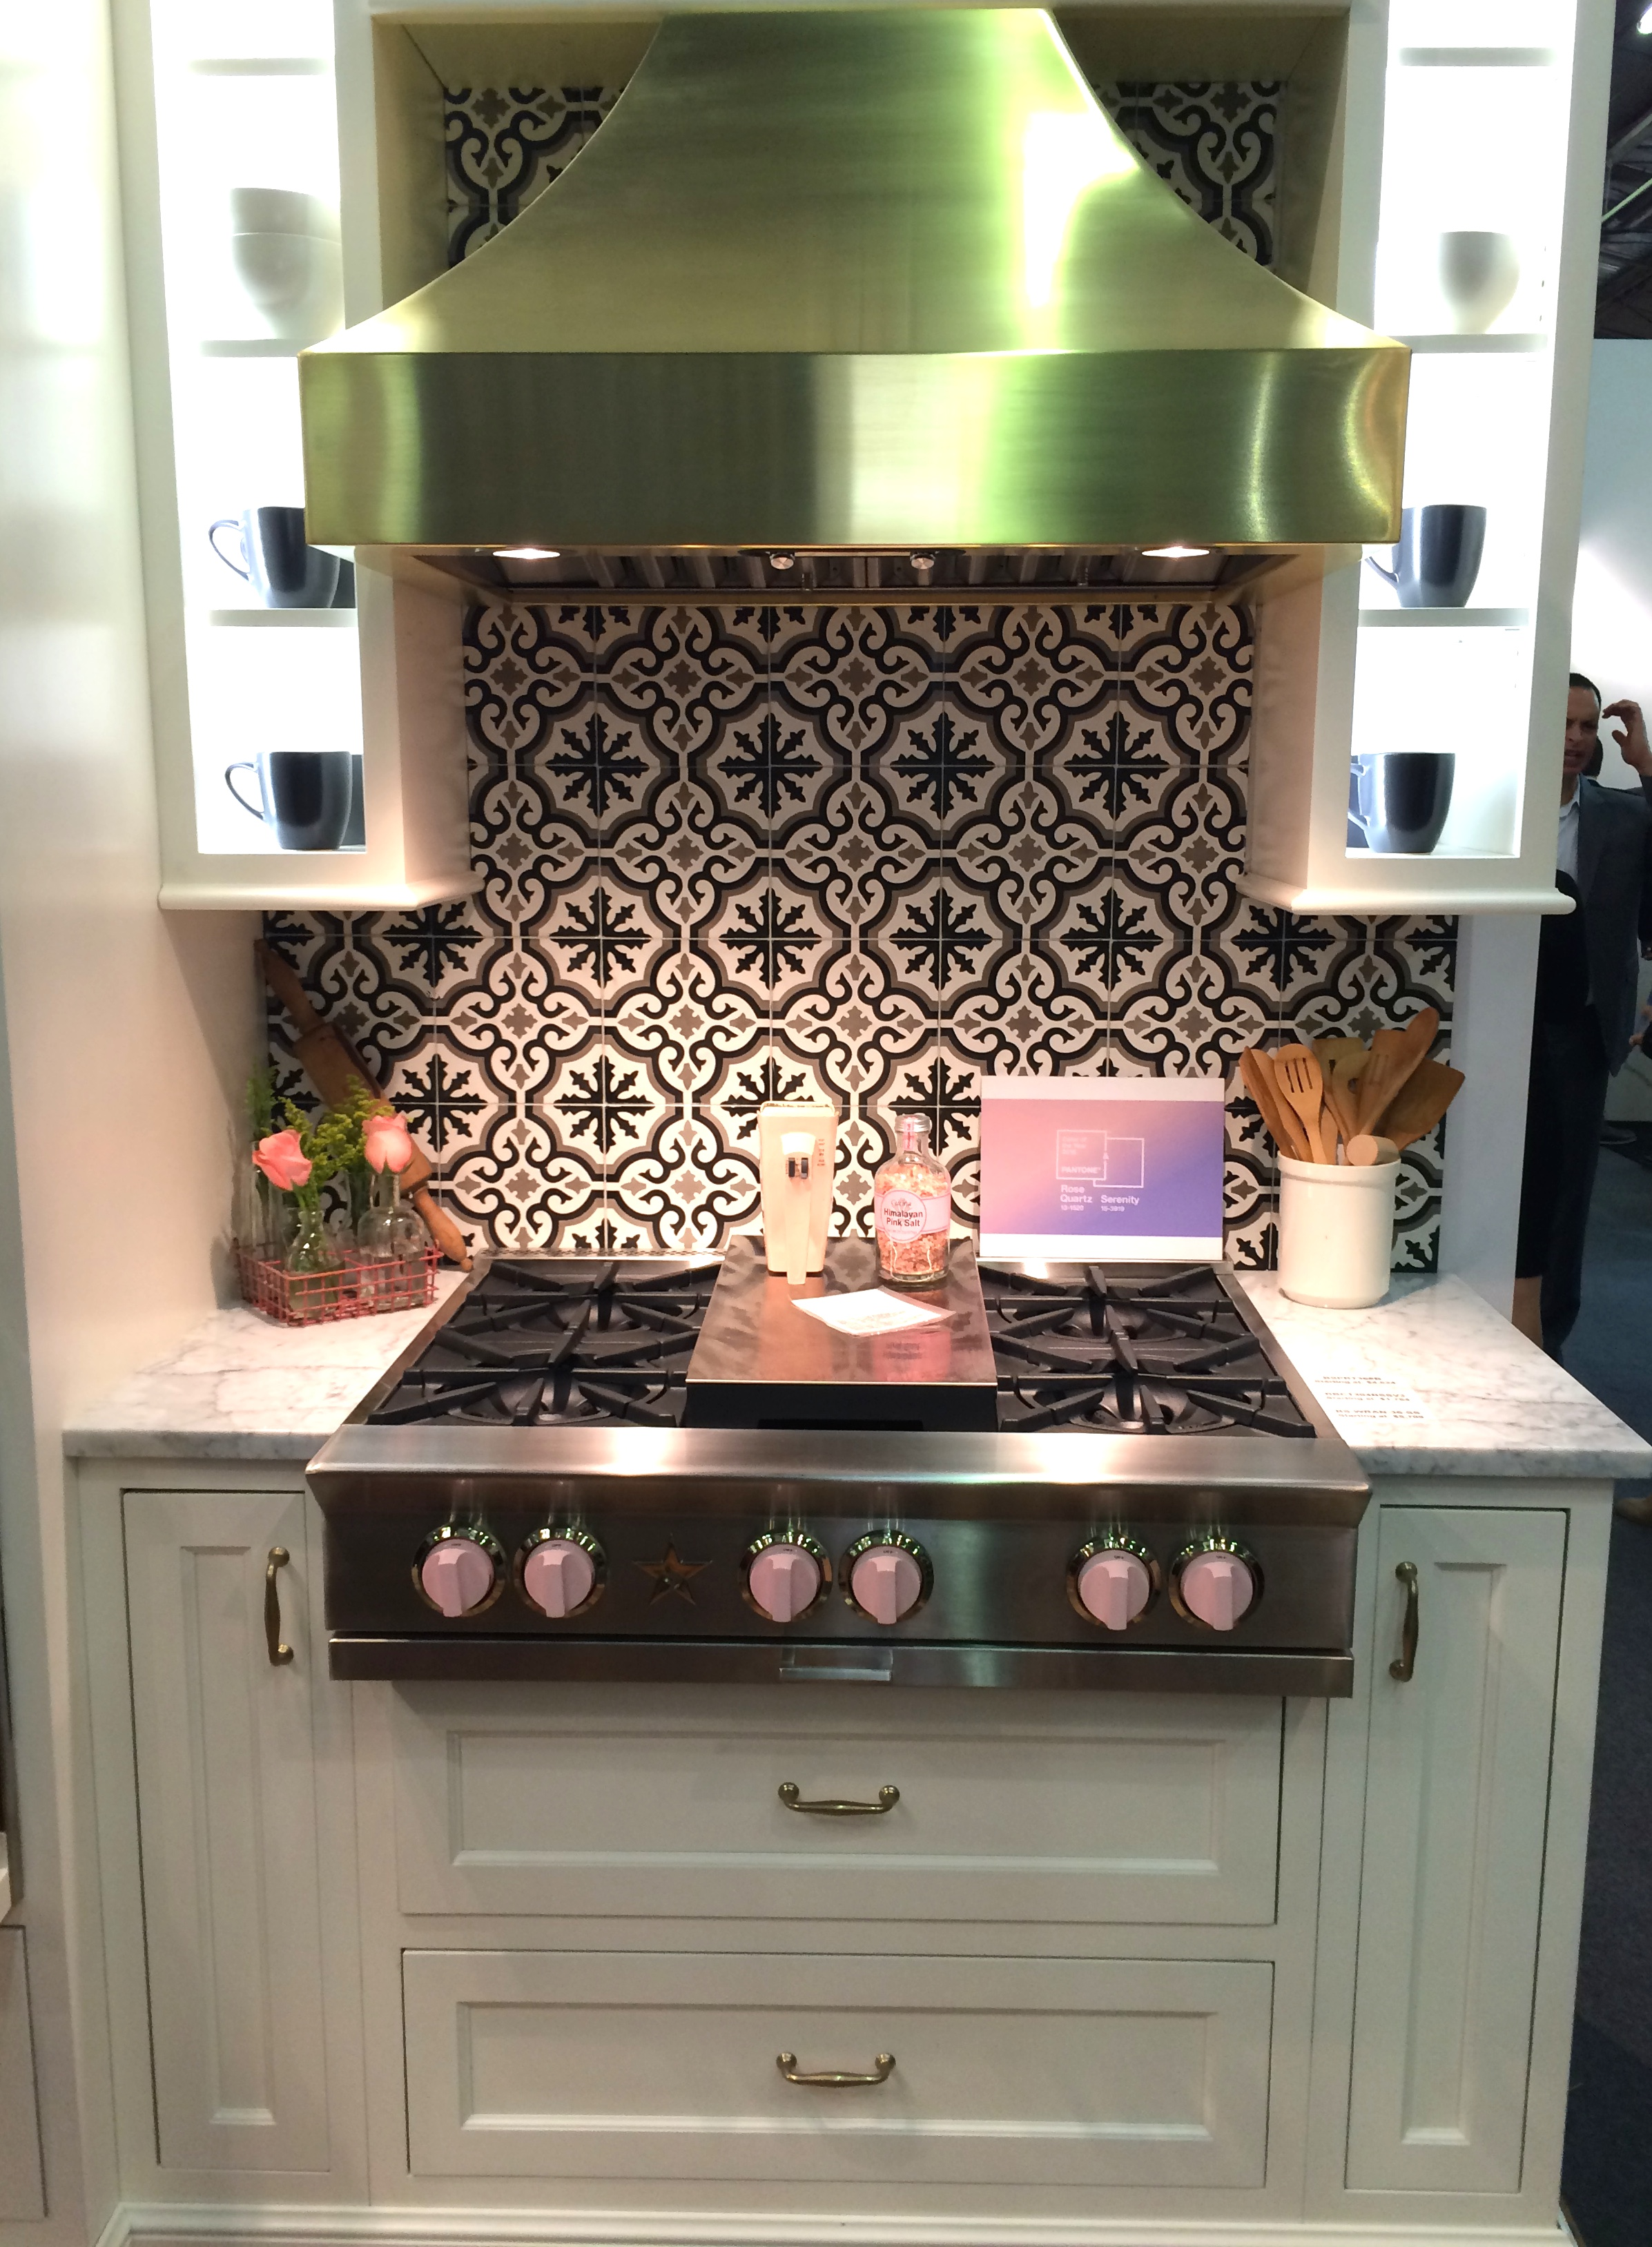 Top trends from the architectural digest show in nyc the for Latest trends in kitchen appliances